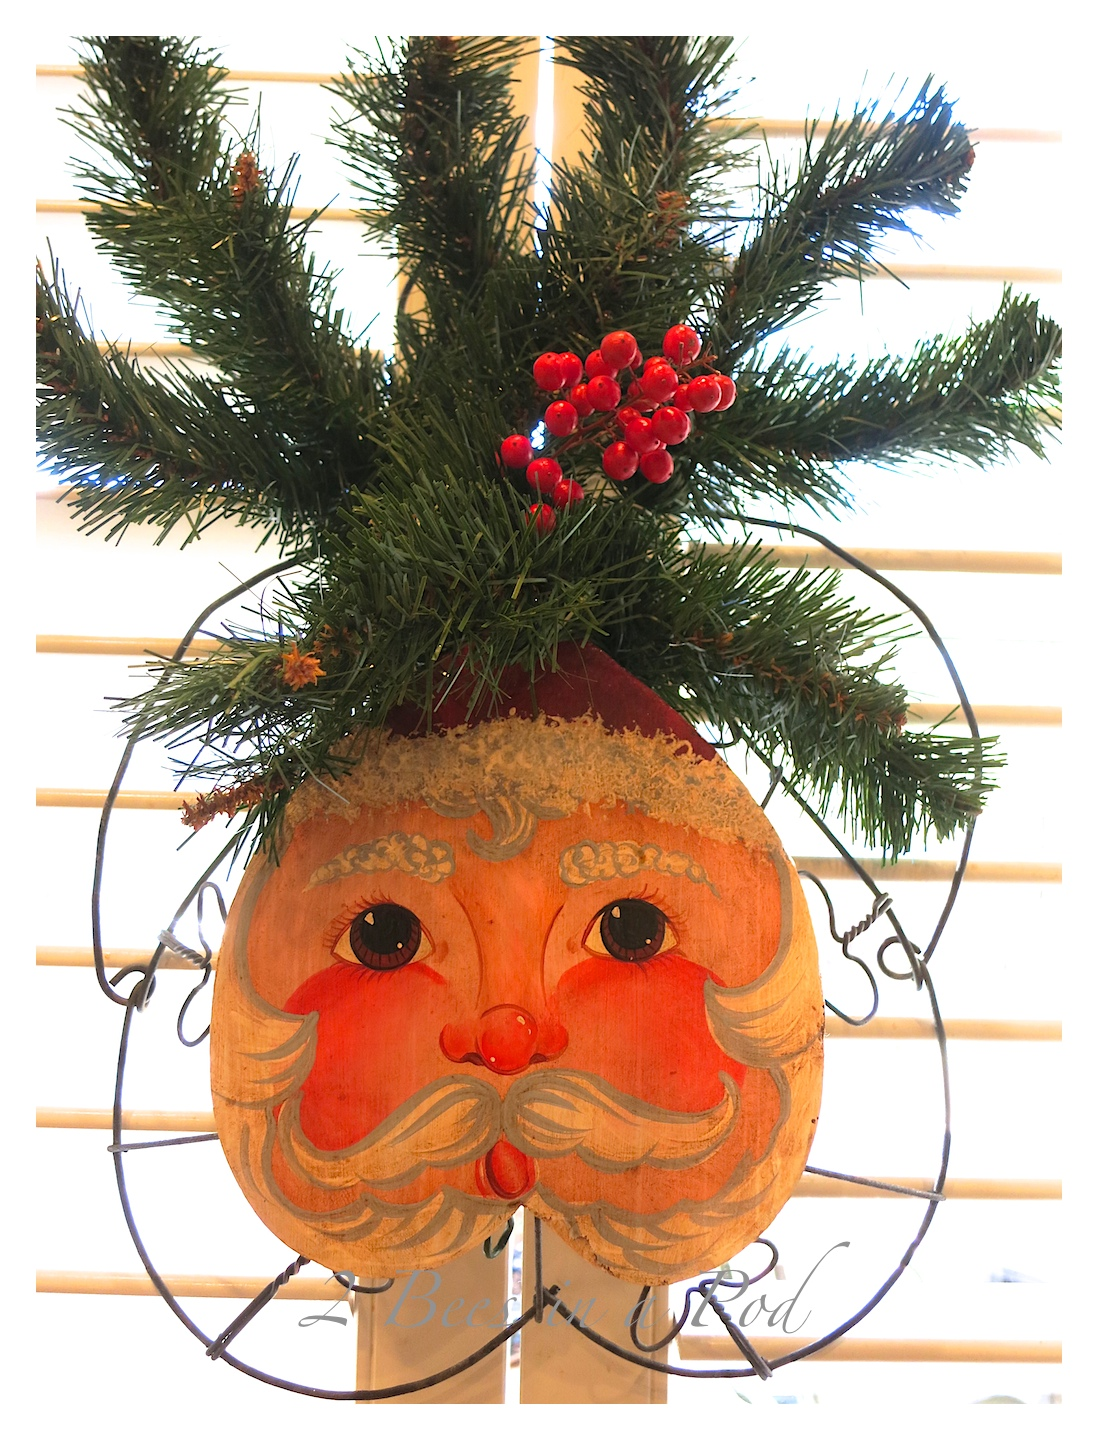 Rustic Christmas - I love the crusty, rusty, chippy and warmth that rustic elements bring to my home for Christmas! This hand painted Santa used to be a basket.